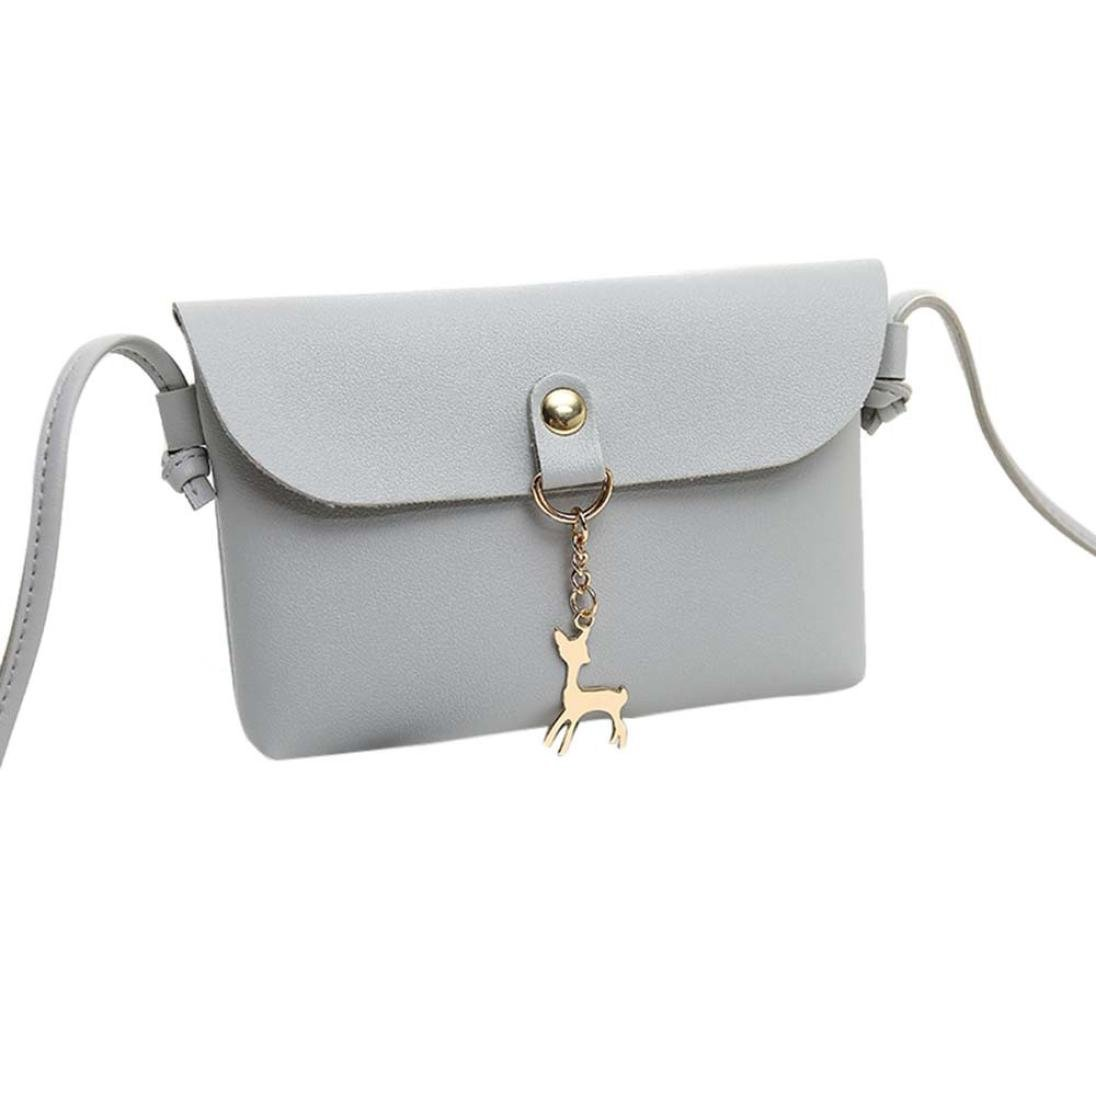 BCDshop Women Small Crossbody Shoulder Bag,GILR Deer Pendant Faux Leather Wallet Coin Purse (Gray)